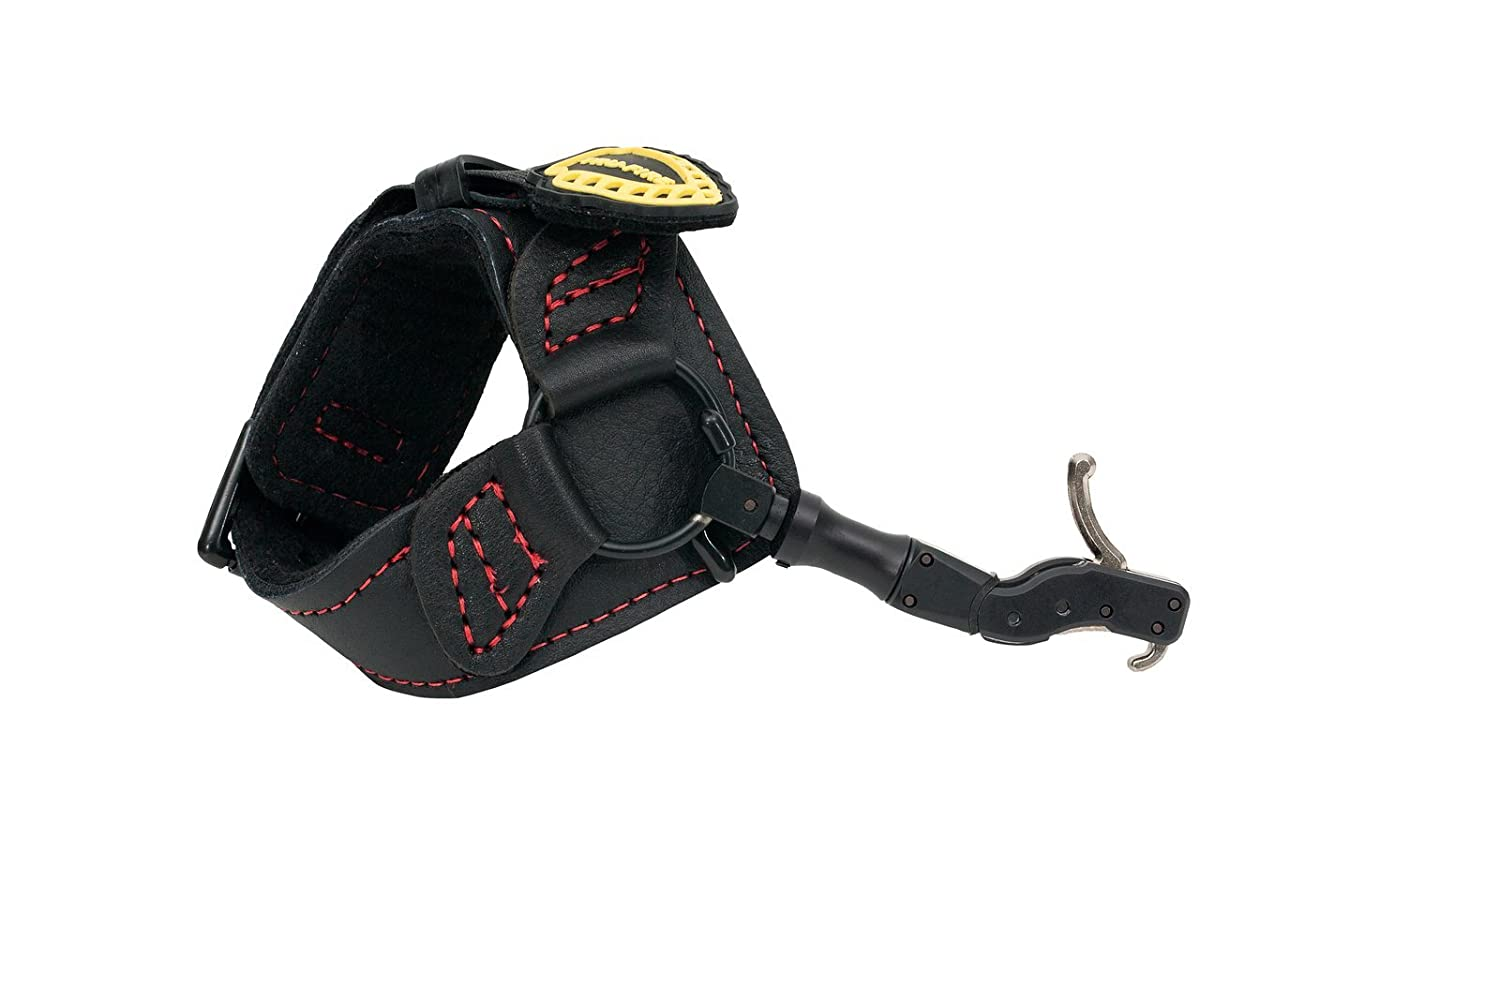 Amazon.com : TruFire Hardcore Buckle Foldback Adjustable Archery ...